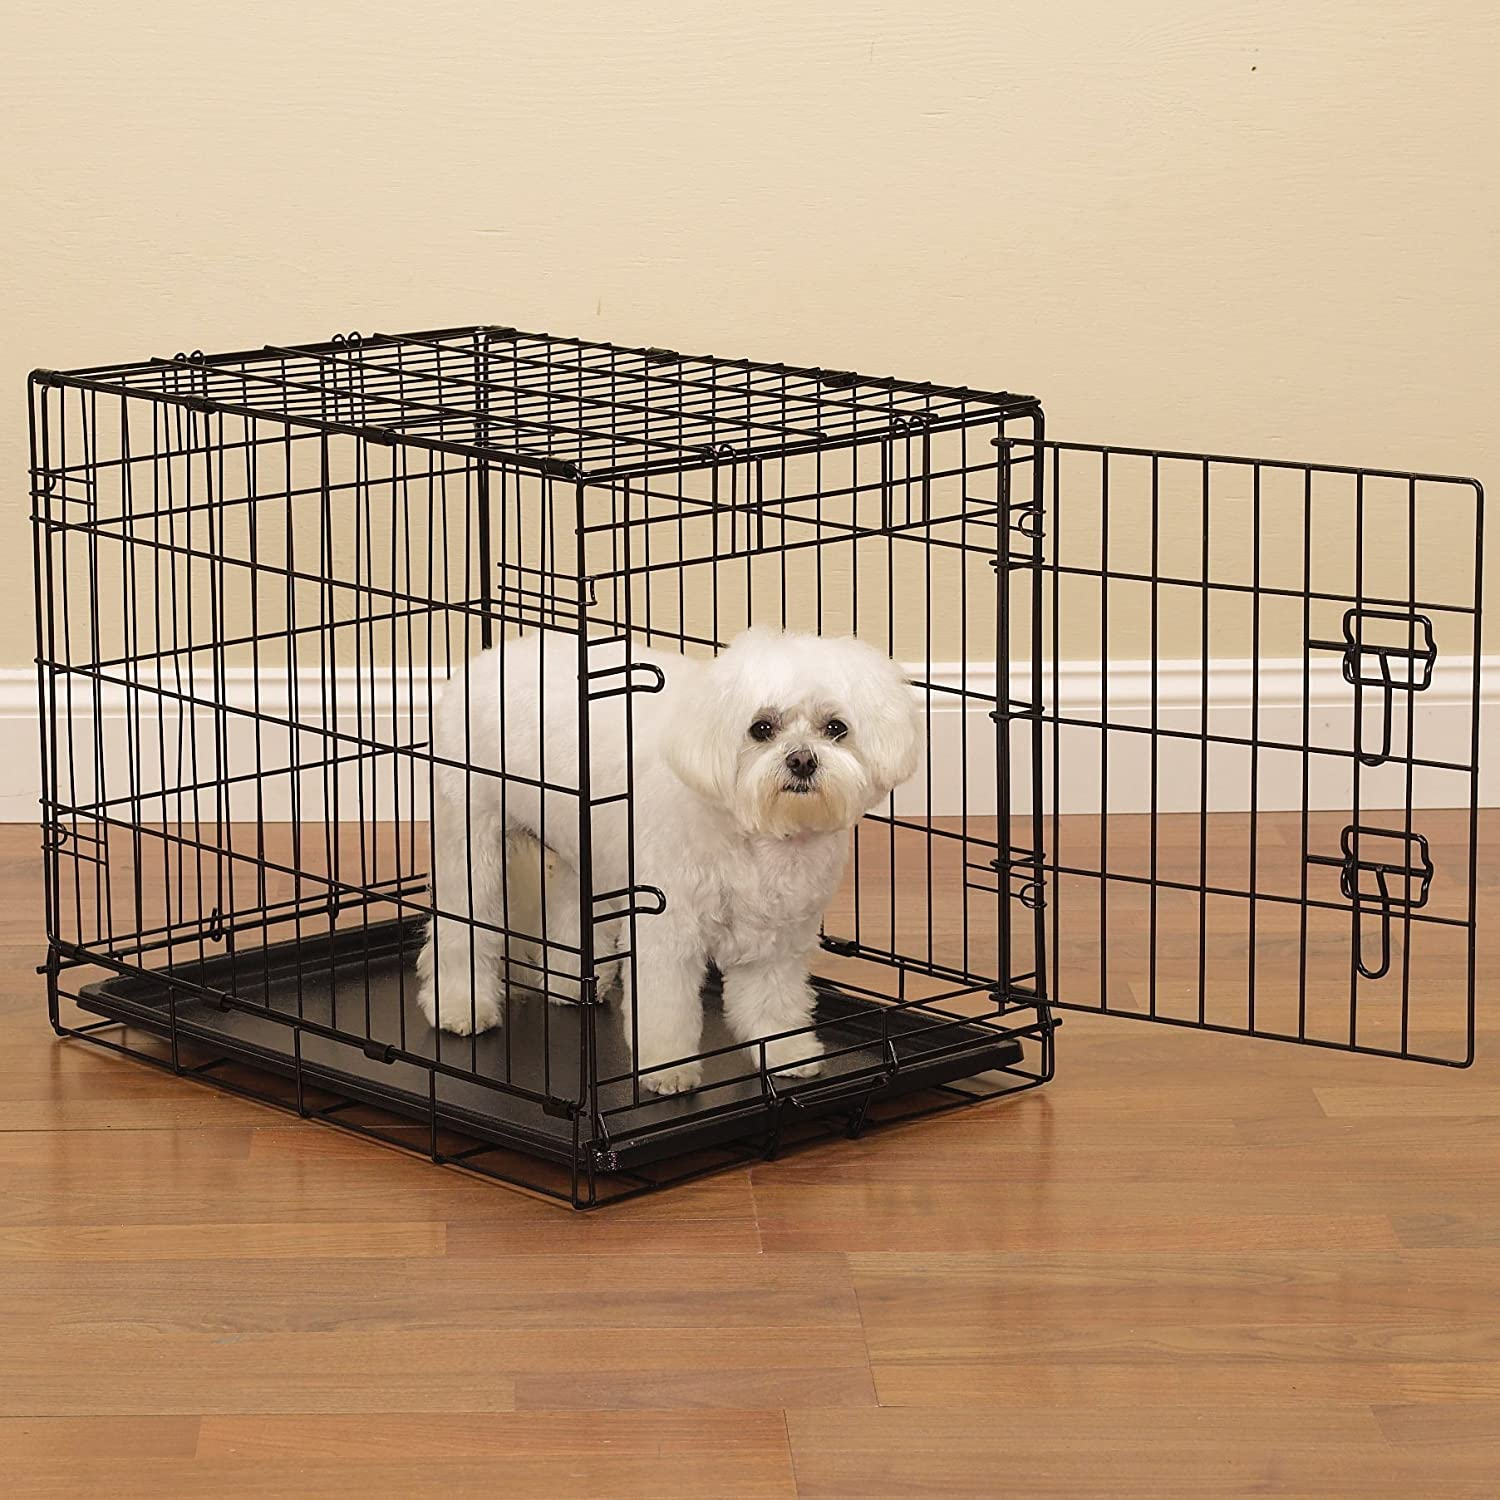 amazoncom  proselect easy dog crates for dogs and pets  black  - amazoncom  proselect easy dog crates for dogs and pets  black smallmedium mediumlarge large extra large  pet crates  pet supplies